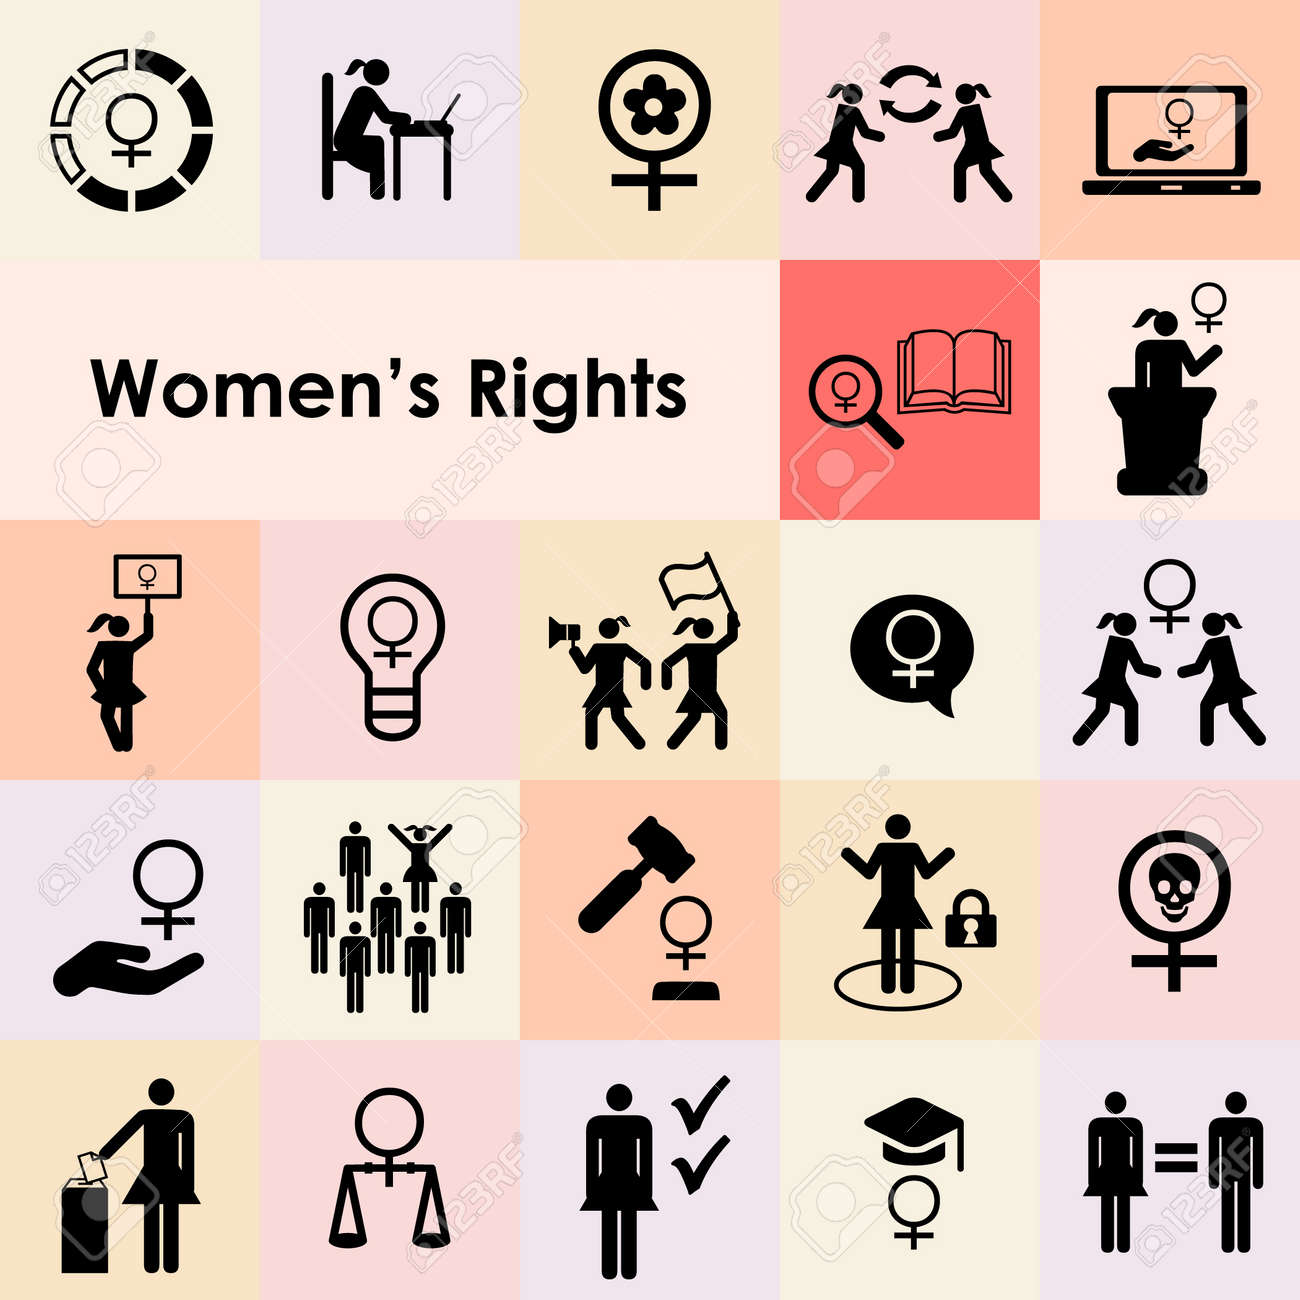 vector icons set for women rights and feminist issues icons set and emblems - 168547546